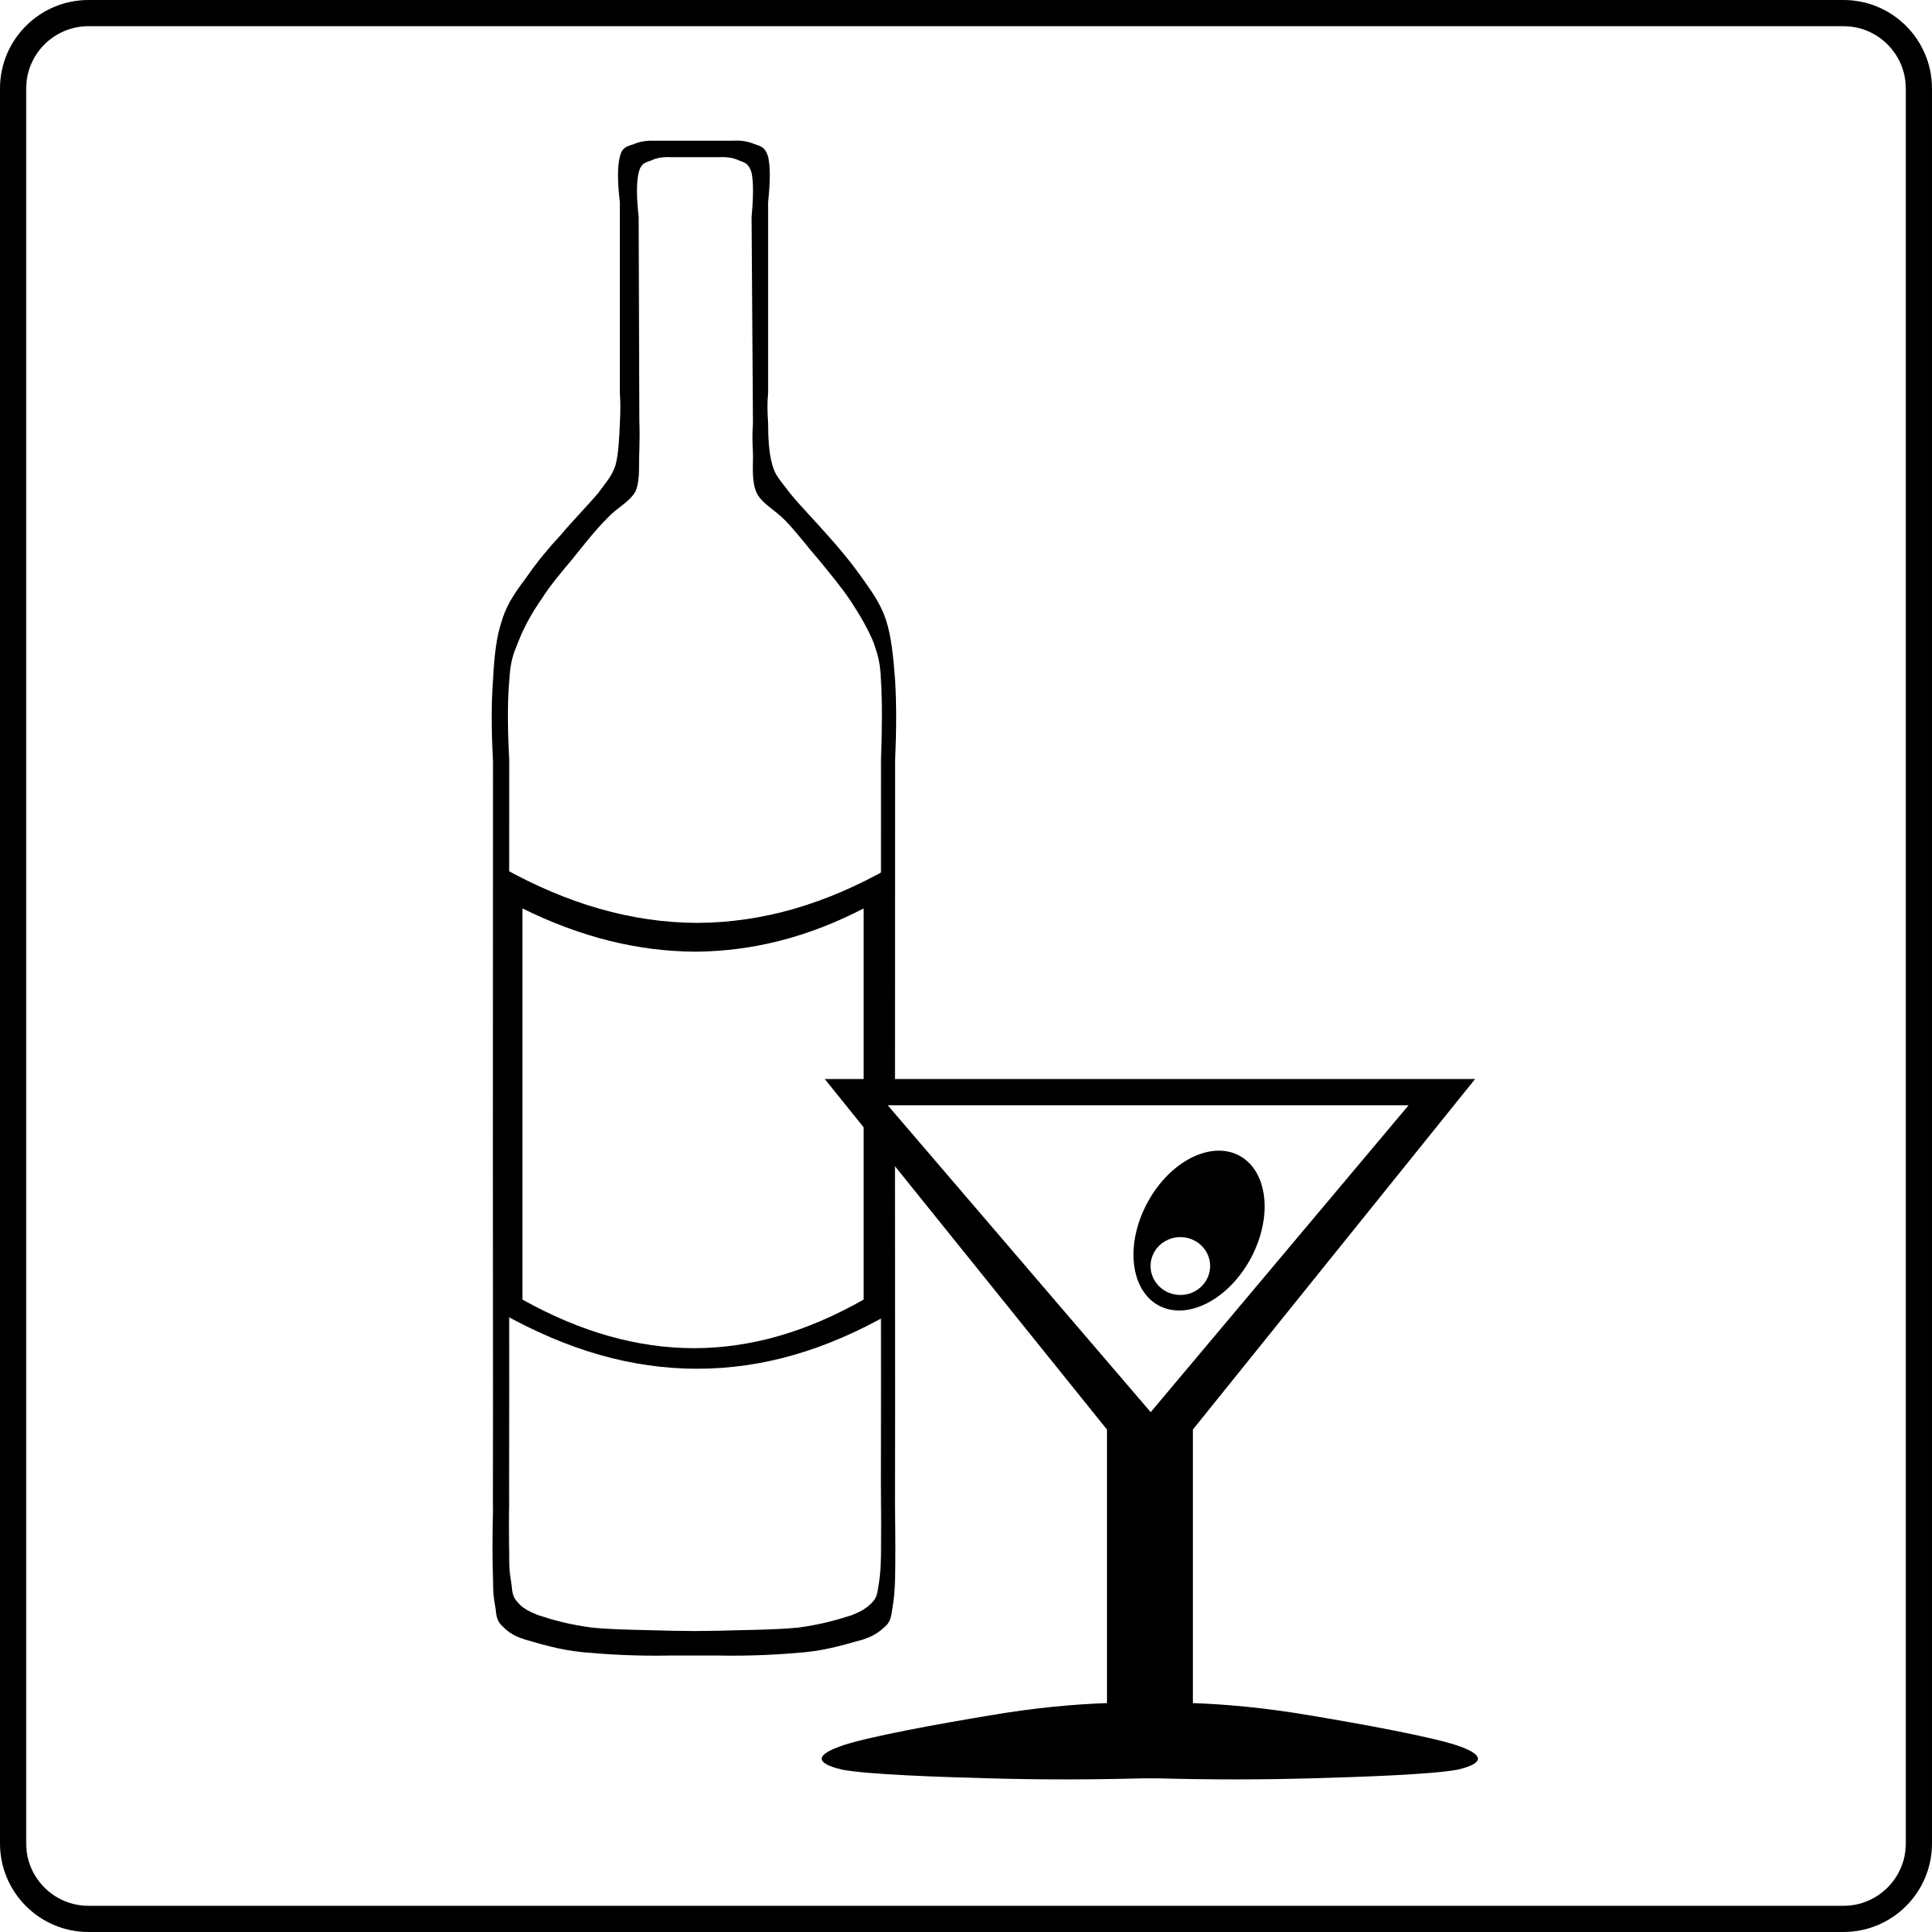 Pin By Mis Apuntes On Arts Free Clip Art Black And White Icon Hotel Bar